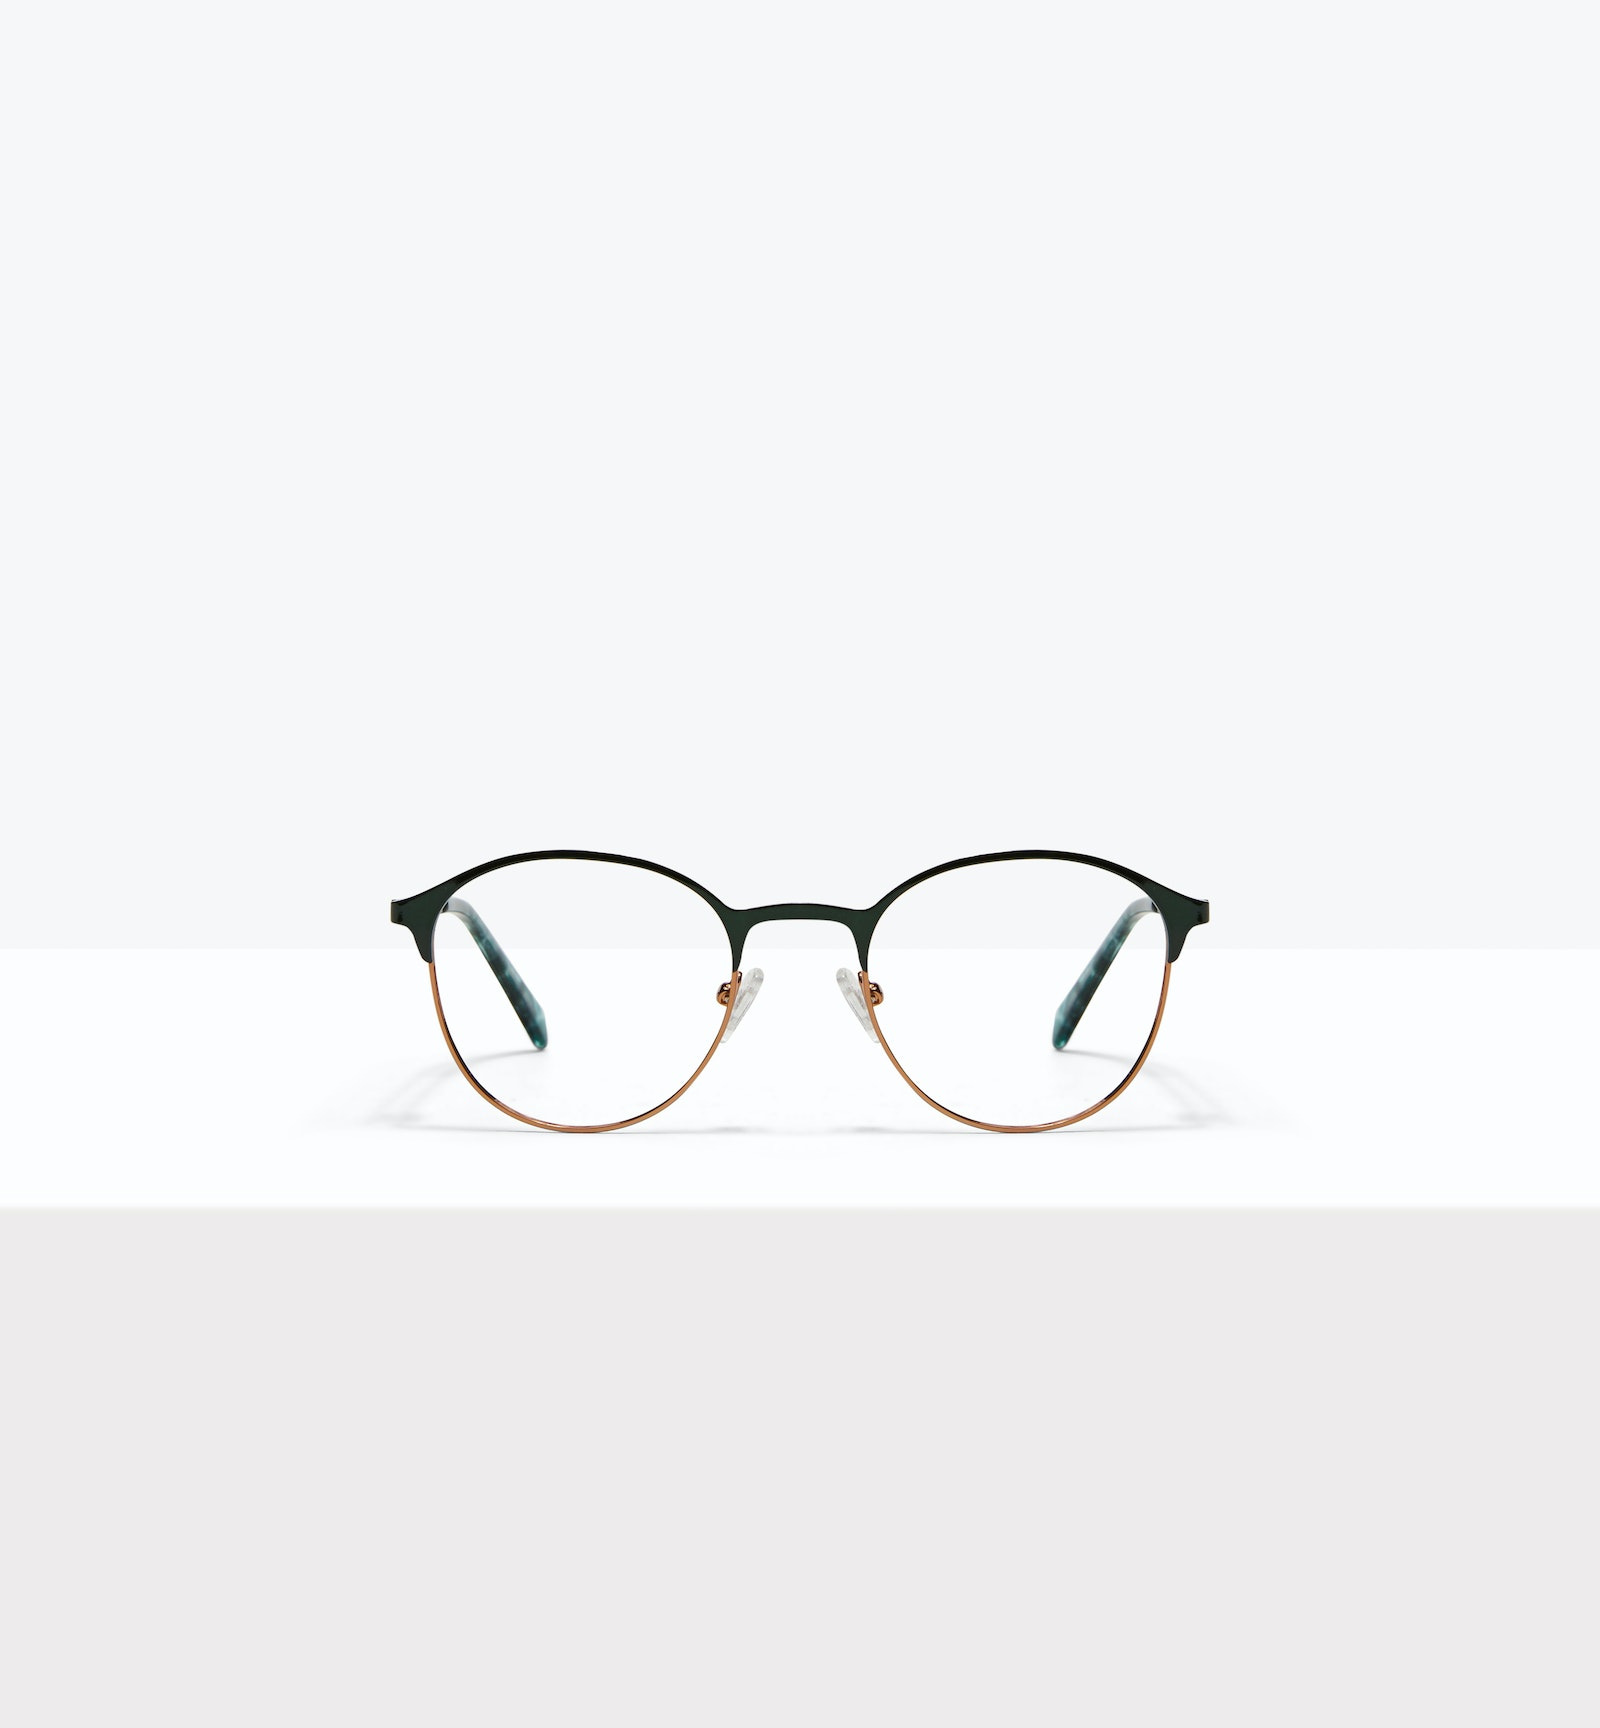 Affordable Fashion Glasses Round Eyeglasses Women Bay II Emeraude